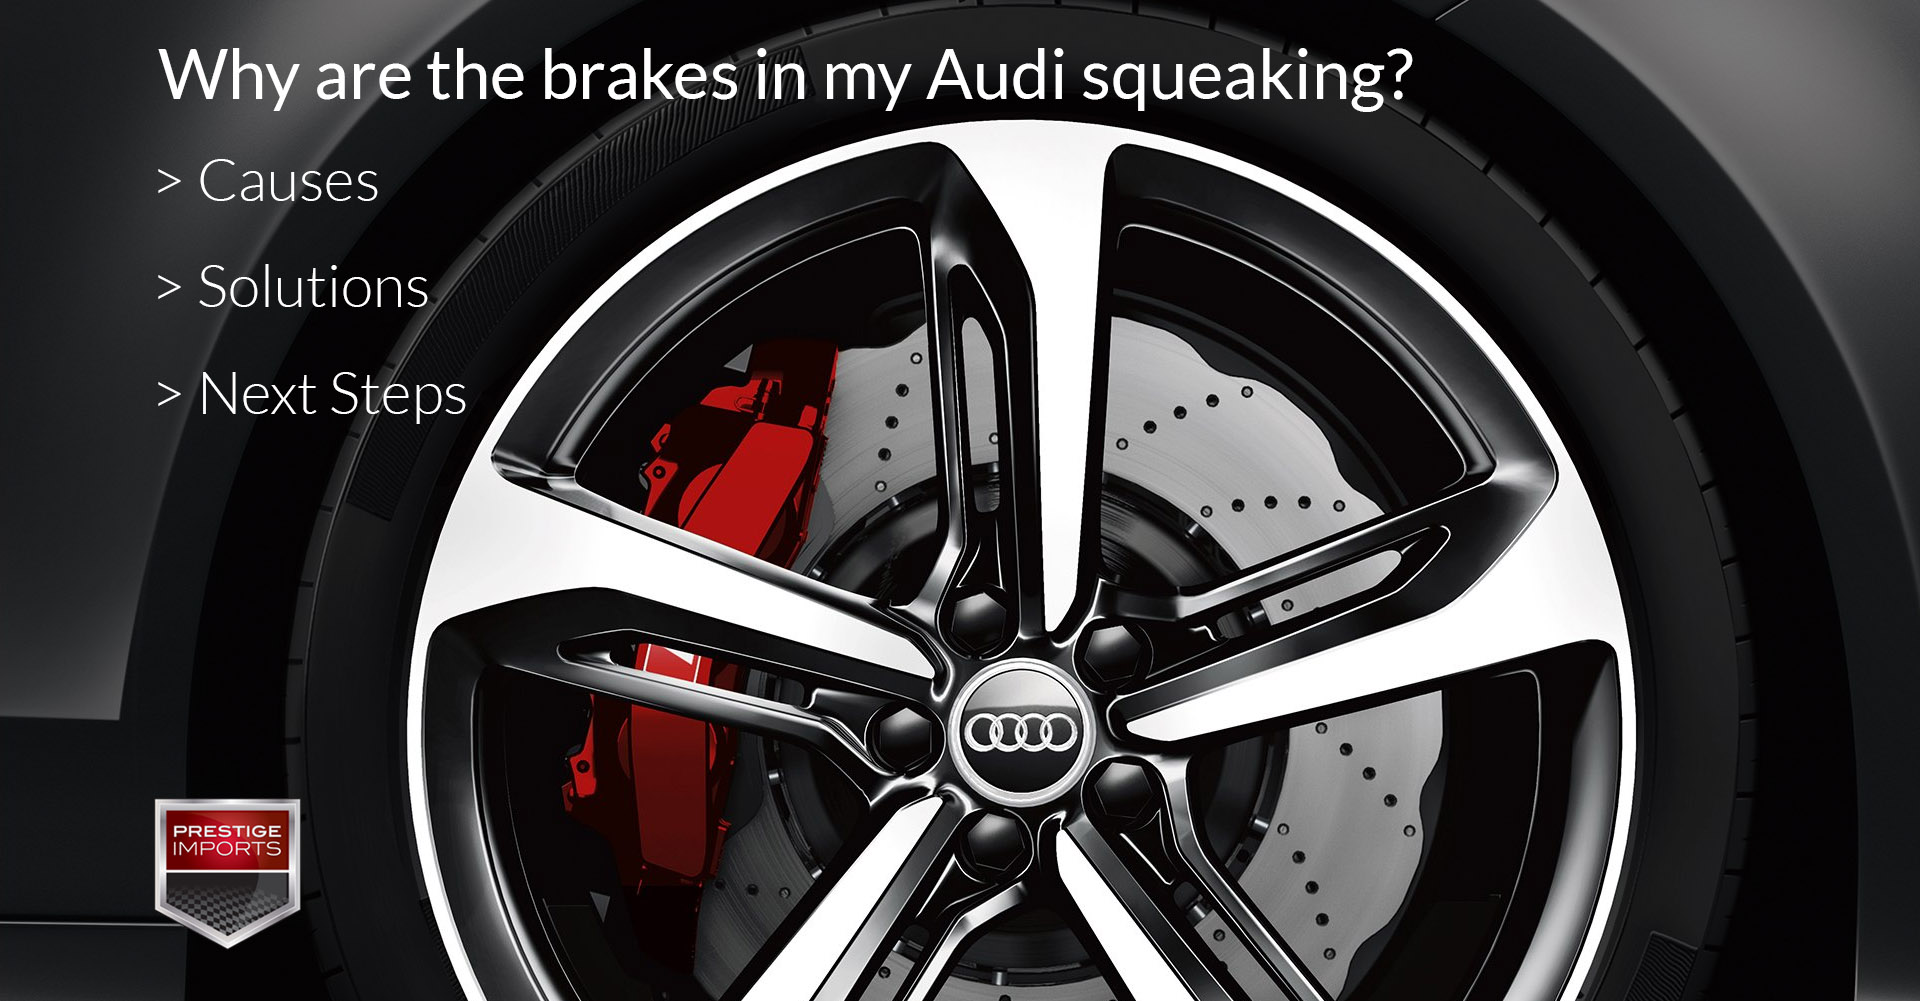 "Close-up photo of an Audi RS7 Wheel and Brake caliper, used to illustrate the article ""Why are my Audi brakes squeaking? Causes, Solutions, Next Steps""."